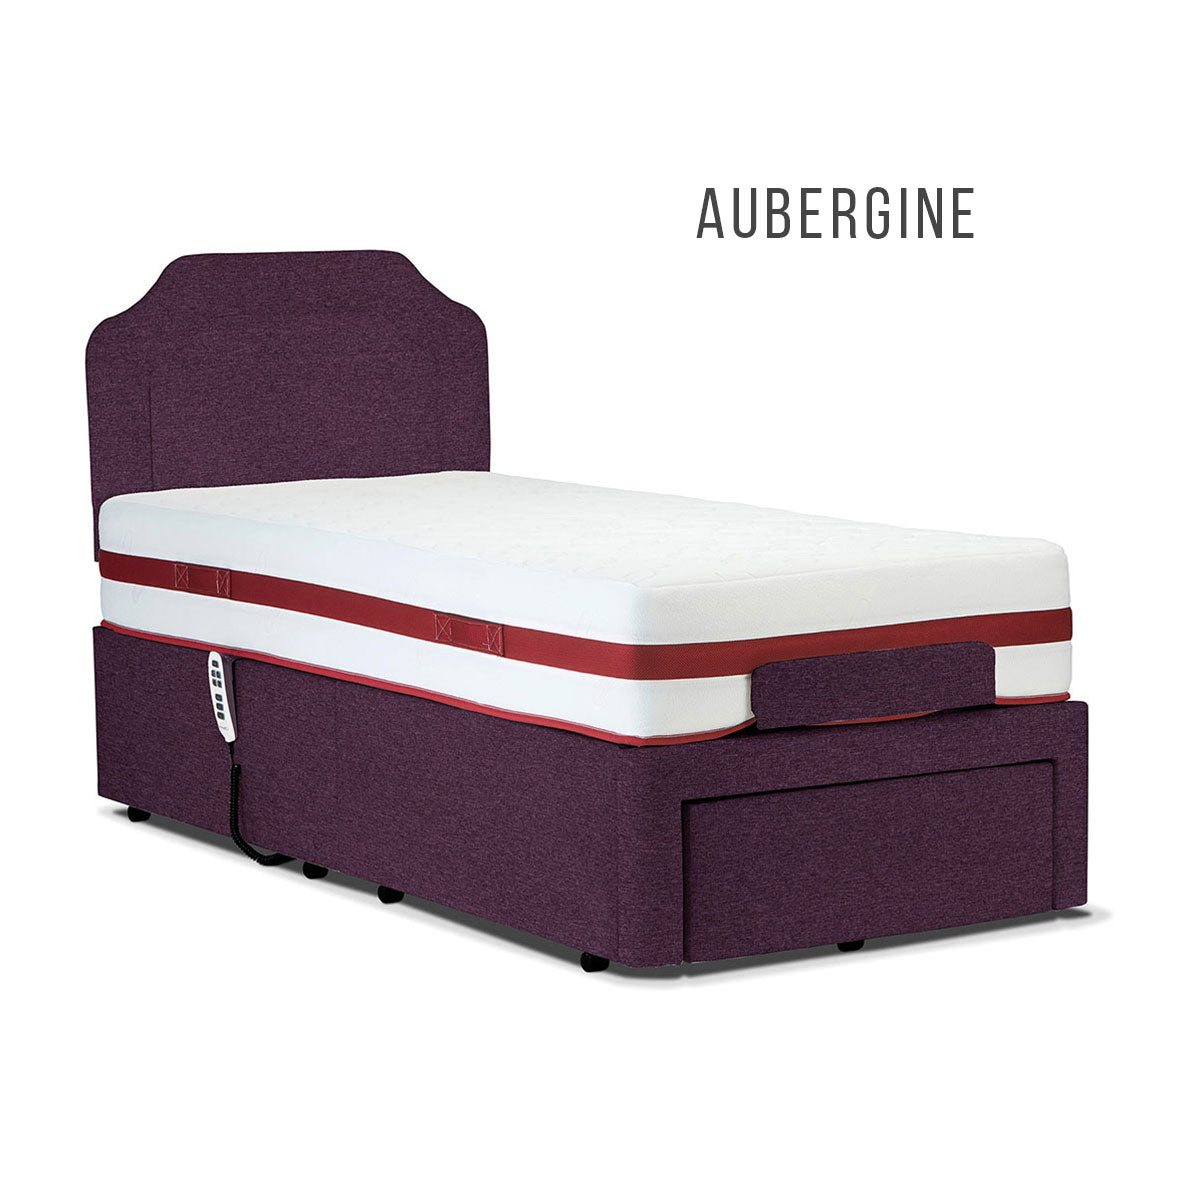 Sherborne 5' Dorchester Head Adjustable Bed